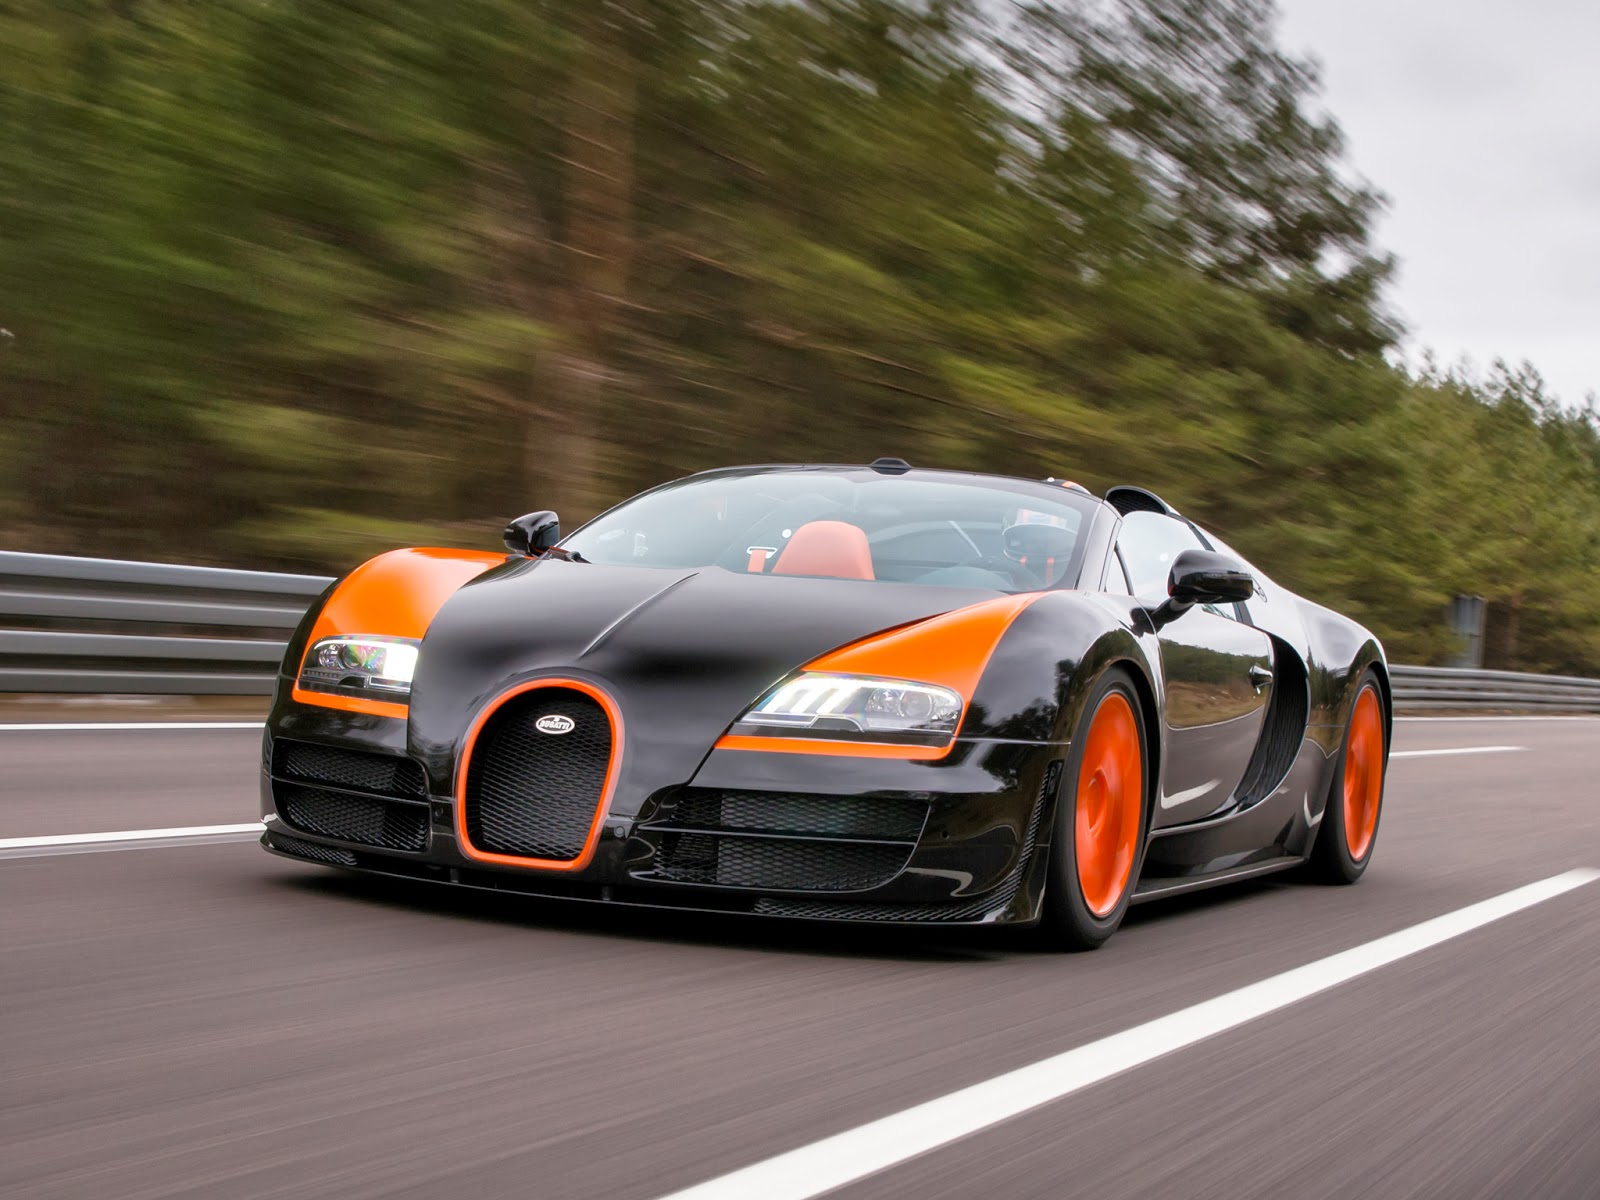 Hd cars wallpapers bugatti veyron hd wallpapers - Bugatti veyron photos wallpapers ...